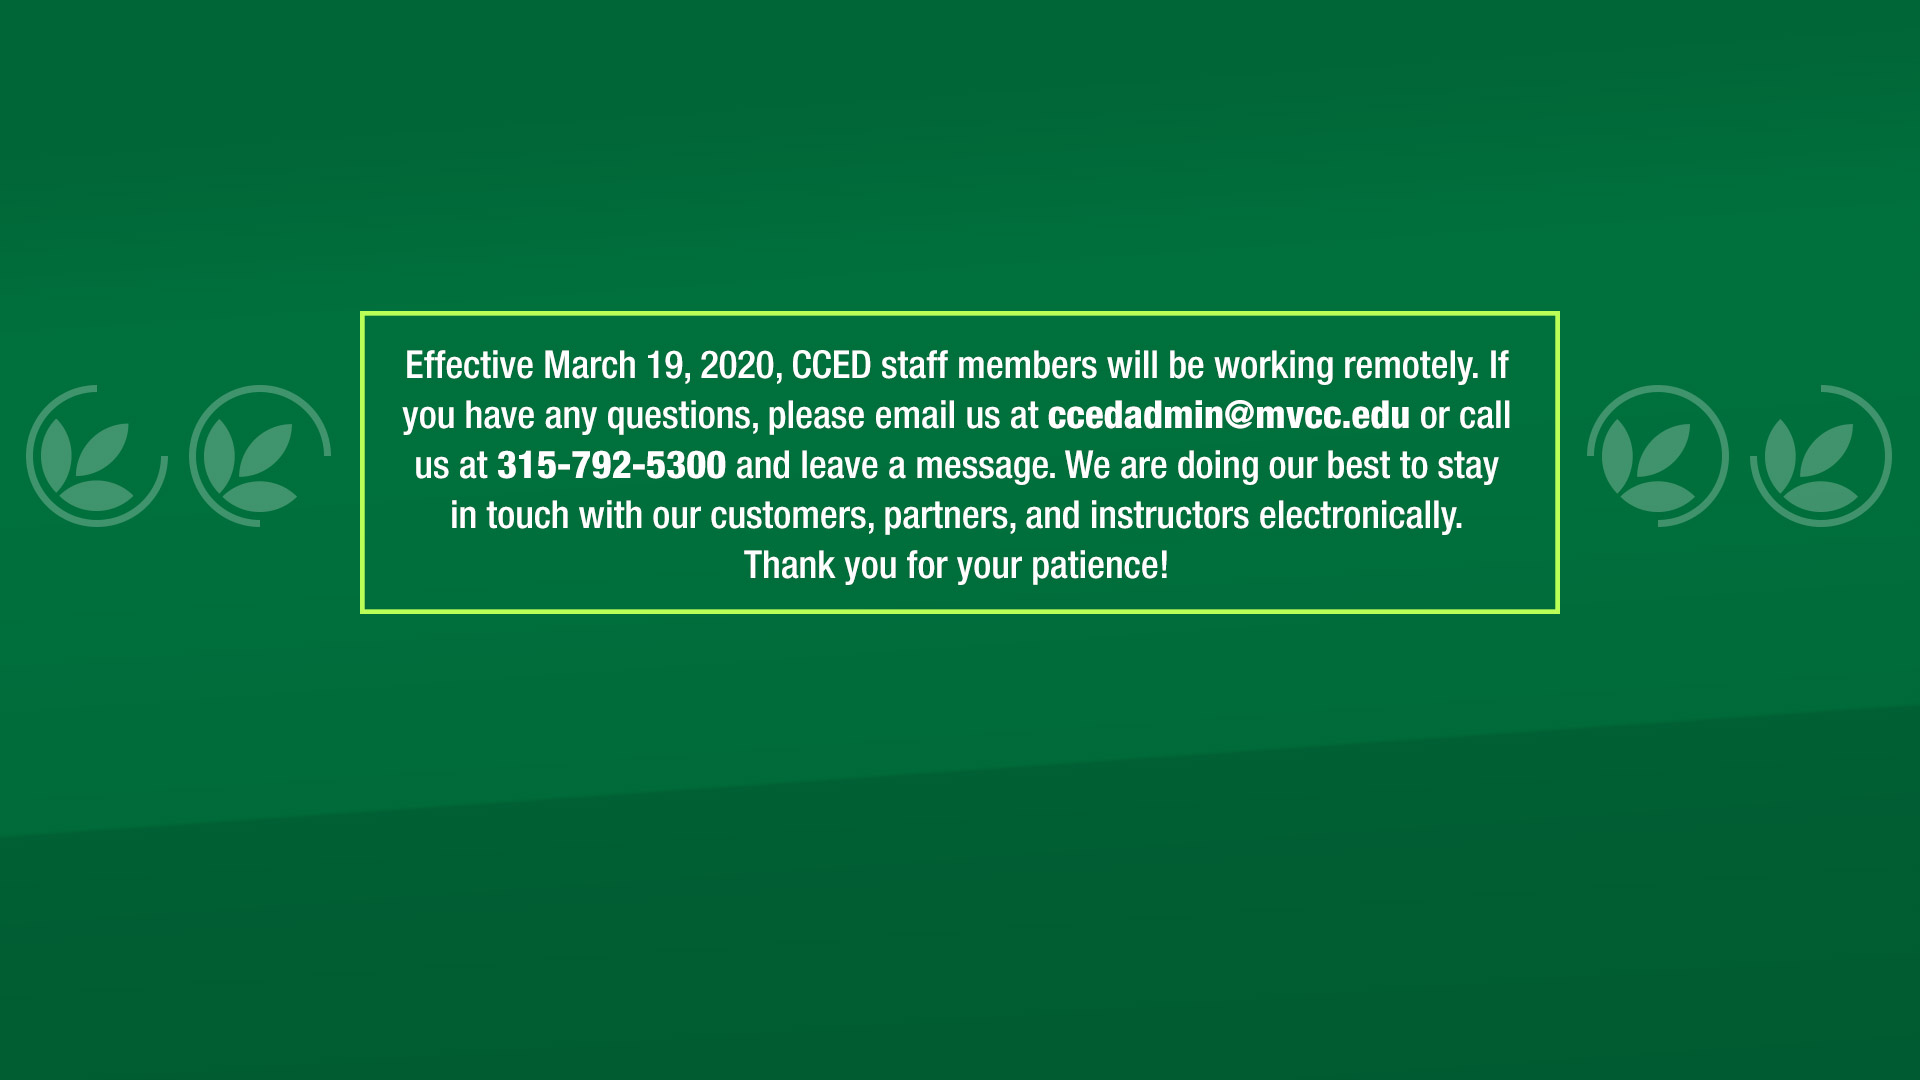 Effective March 19, 2020, CCED staff members will be working remotely. If you have any questions, please email us at ccedadmin@mvcc.edu or call us at 315-792-5300 and leave a message. We are doing our best to stay in touch with our customers, partners, and instructors electronically. Thank you for your patience!